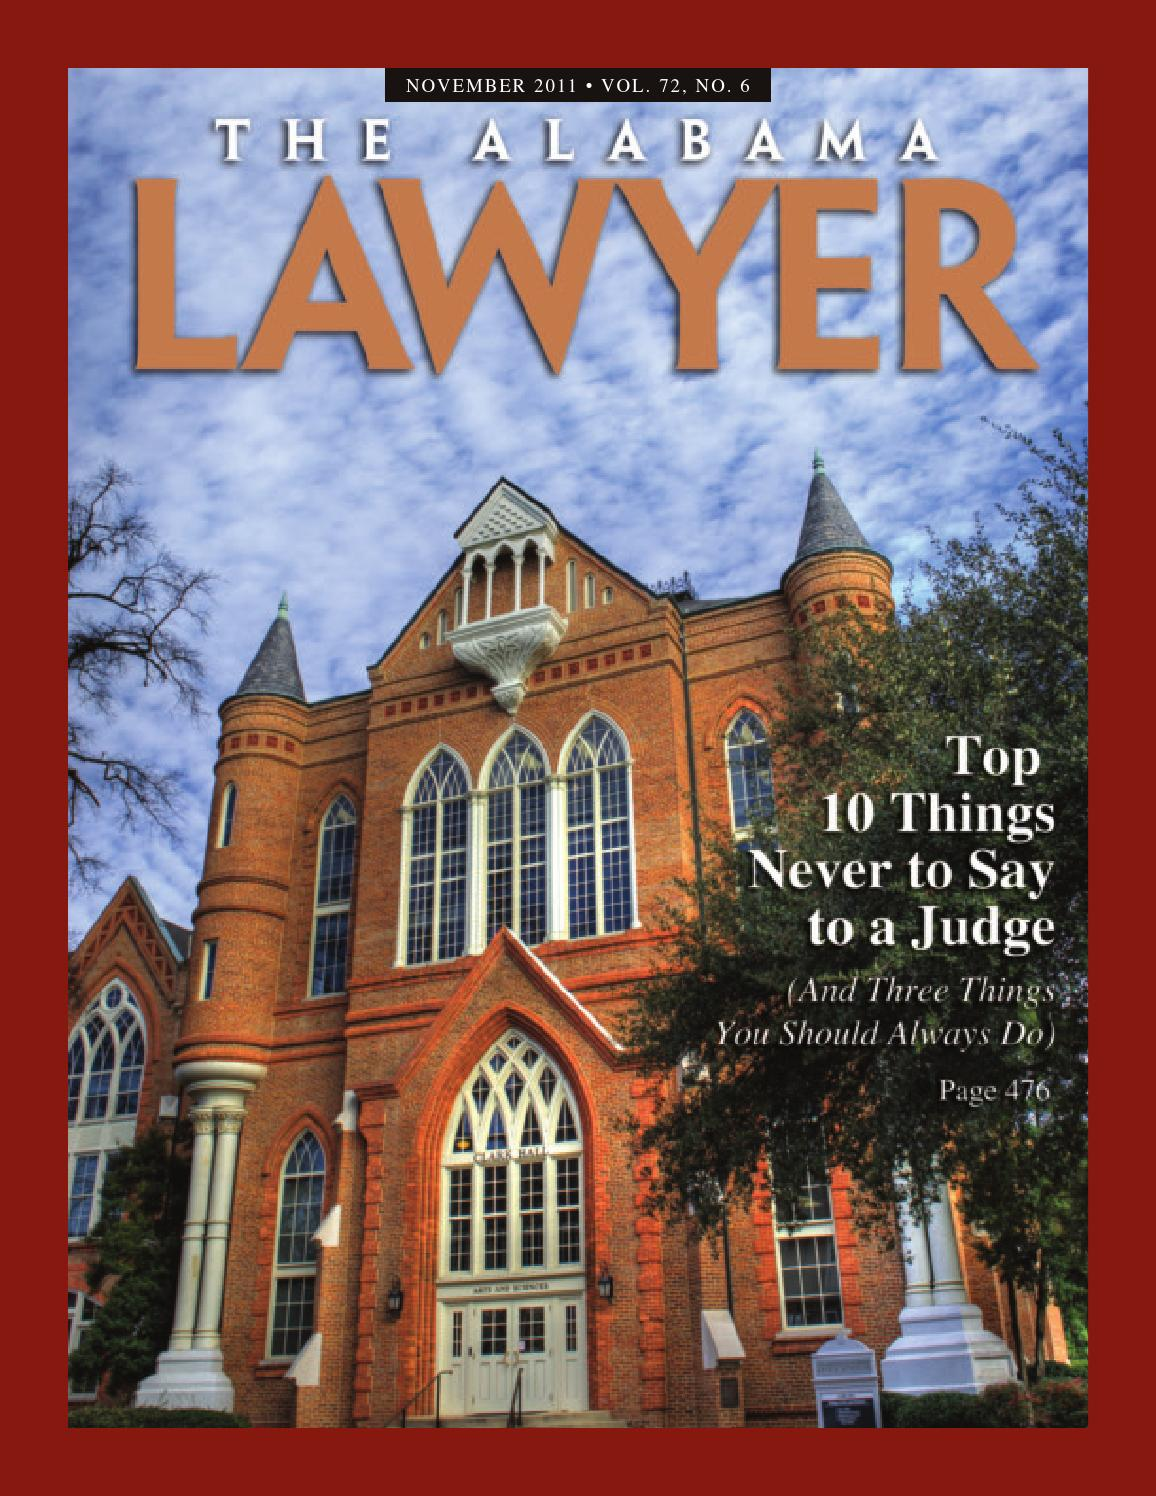 The Alabama Lawyer September 2014 By State Bar Association From Quot Http En650wikiorg Indexphp 415watchdogcircuit Al Nov 2011